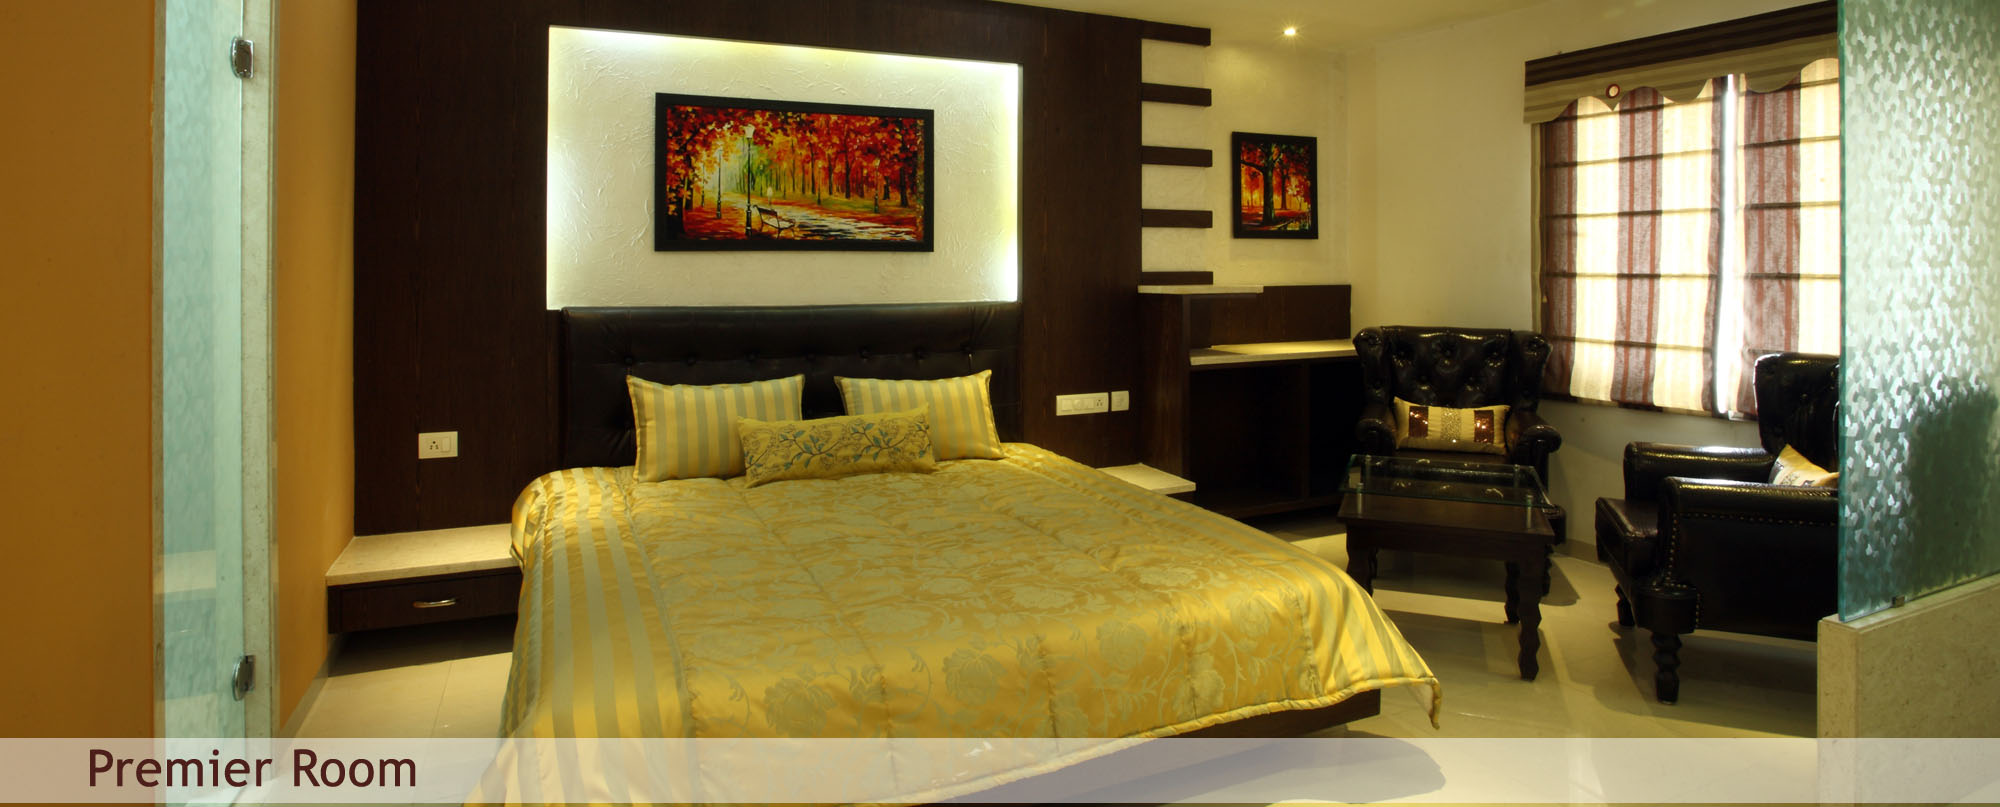 various budget hotels at Kota